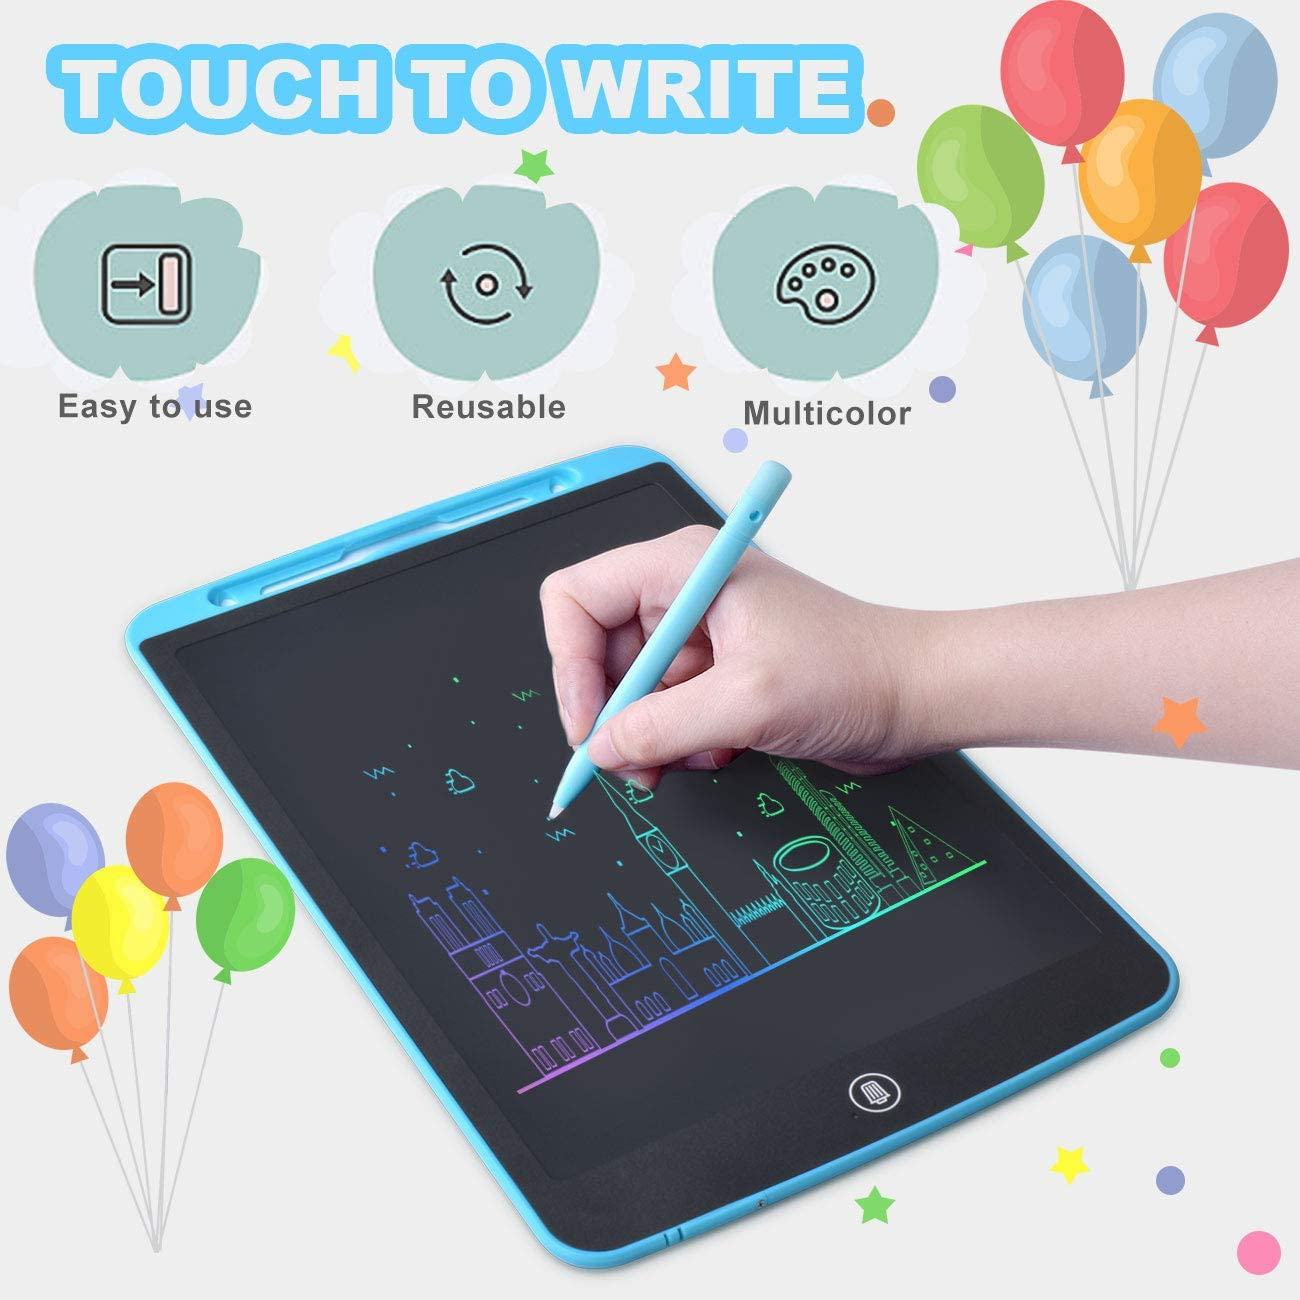 Blue LCD Writing Tablet 10 Inch,Colorful Drawing Board Doodle Board Electronic Drawing Tablet with Lock Function for Kids 3+,Home School Office